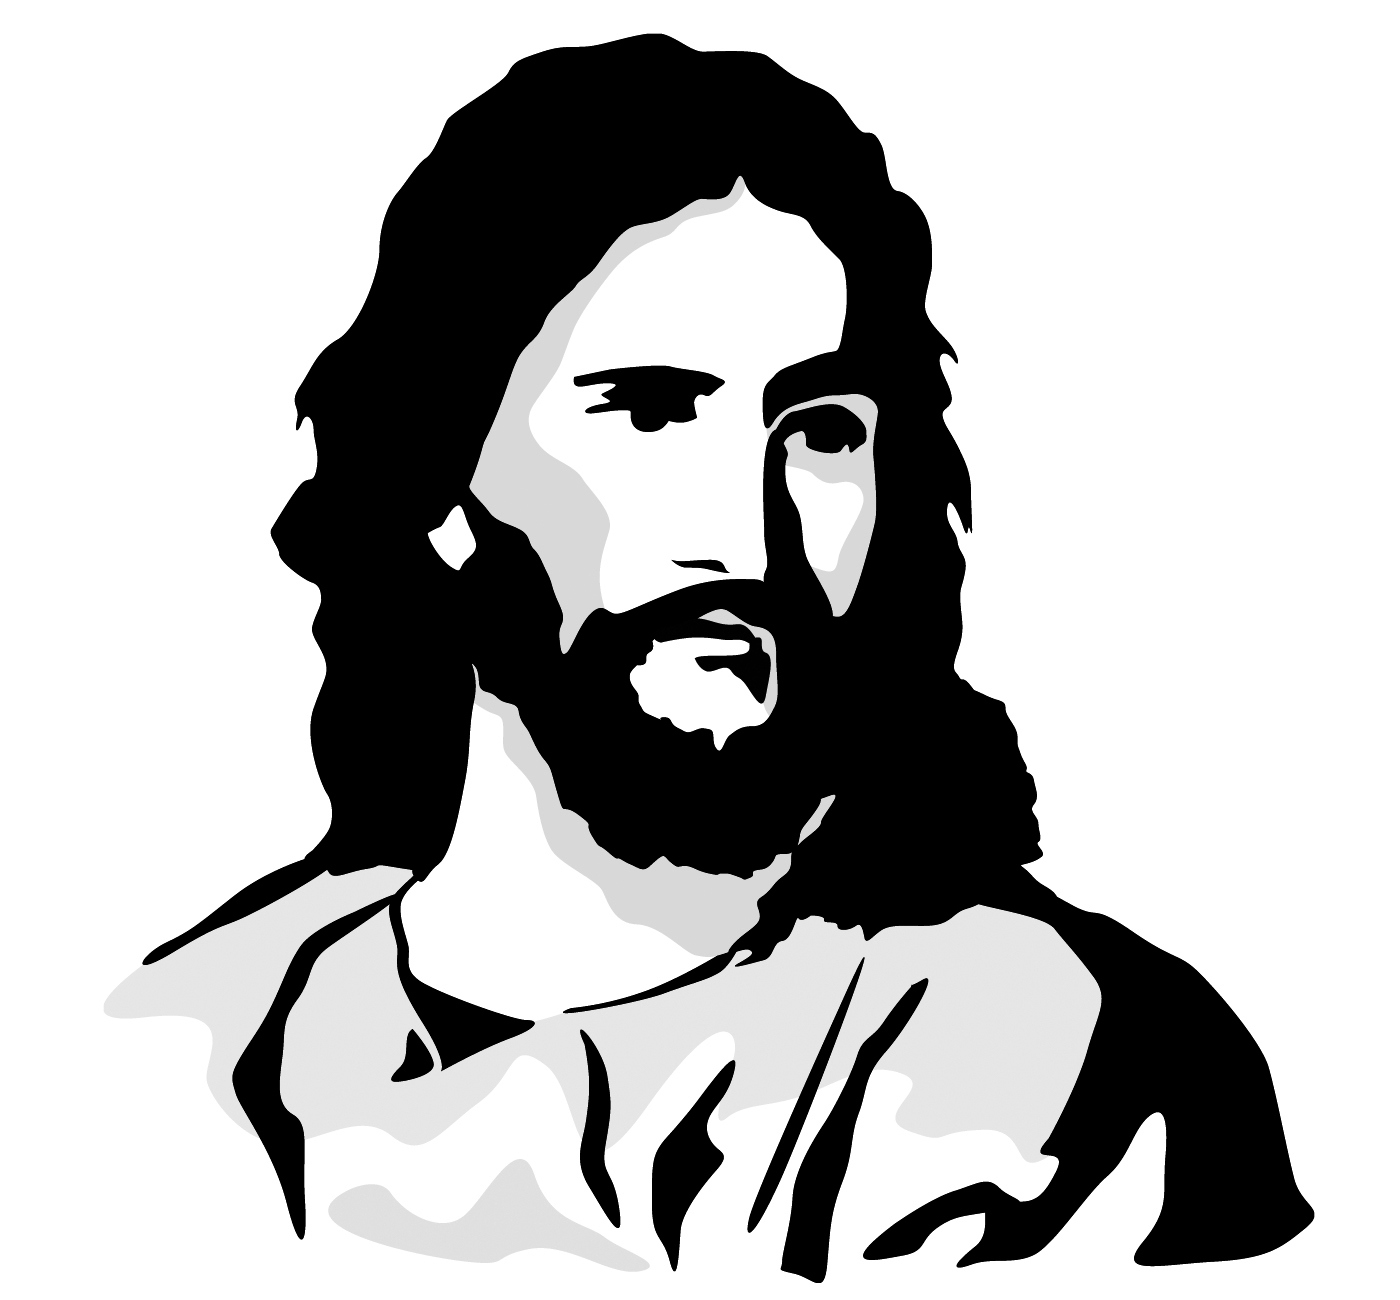 Lds Jesus Christ Clipart Silhouette Clipground